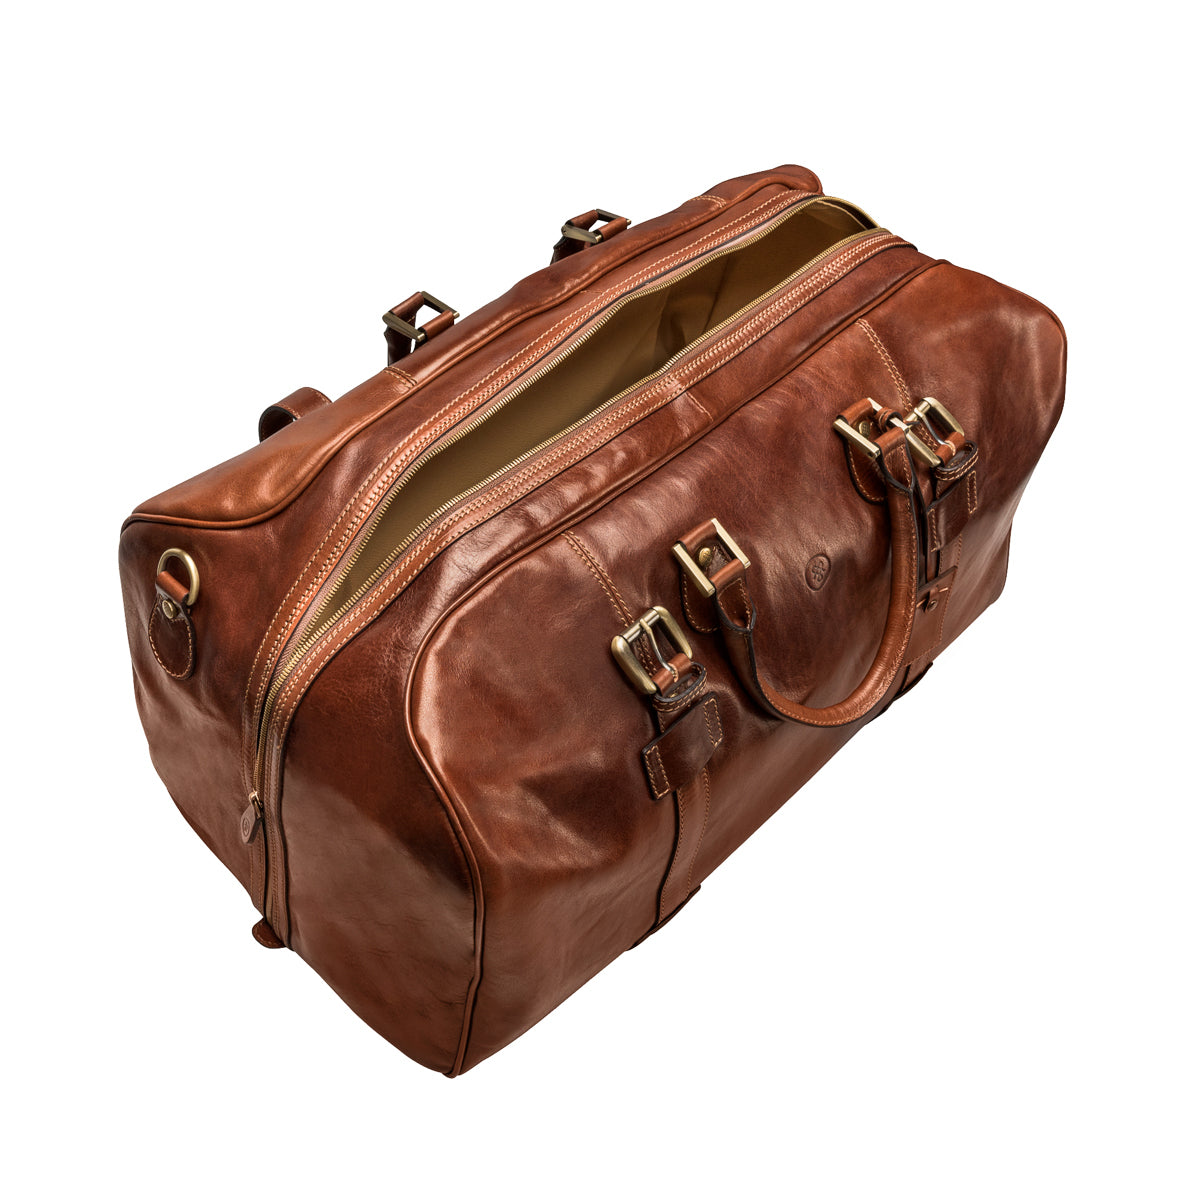 Image 5 of the Extra Large 'Flero' Chestnut Veg-Tanned Leather Holdall